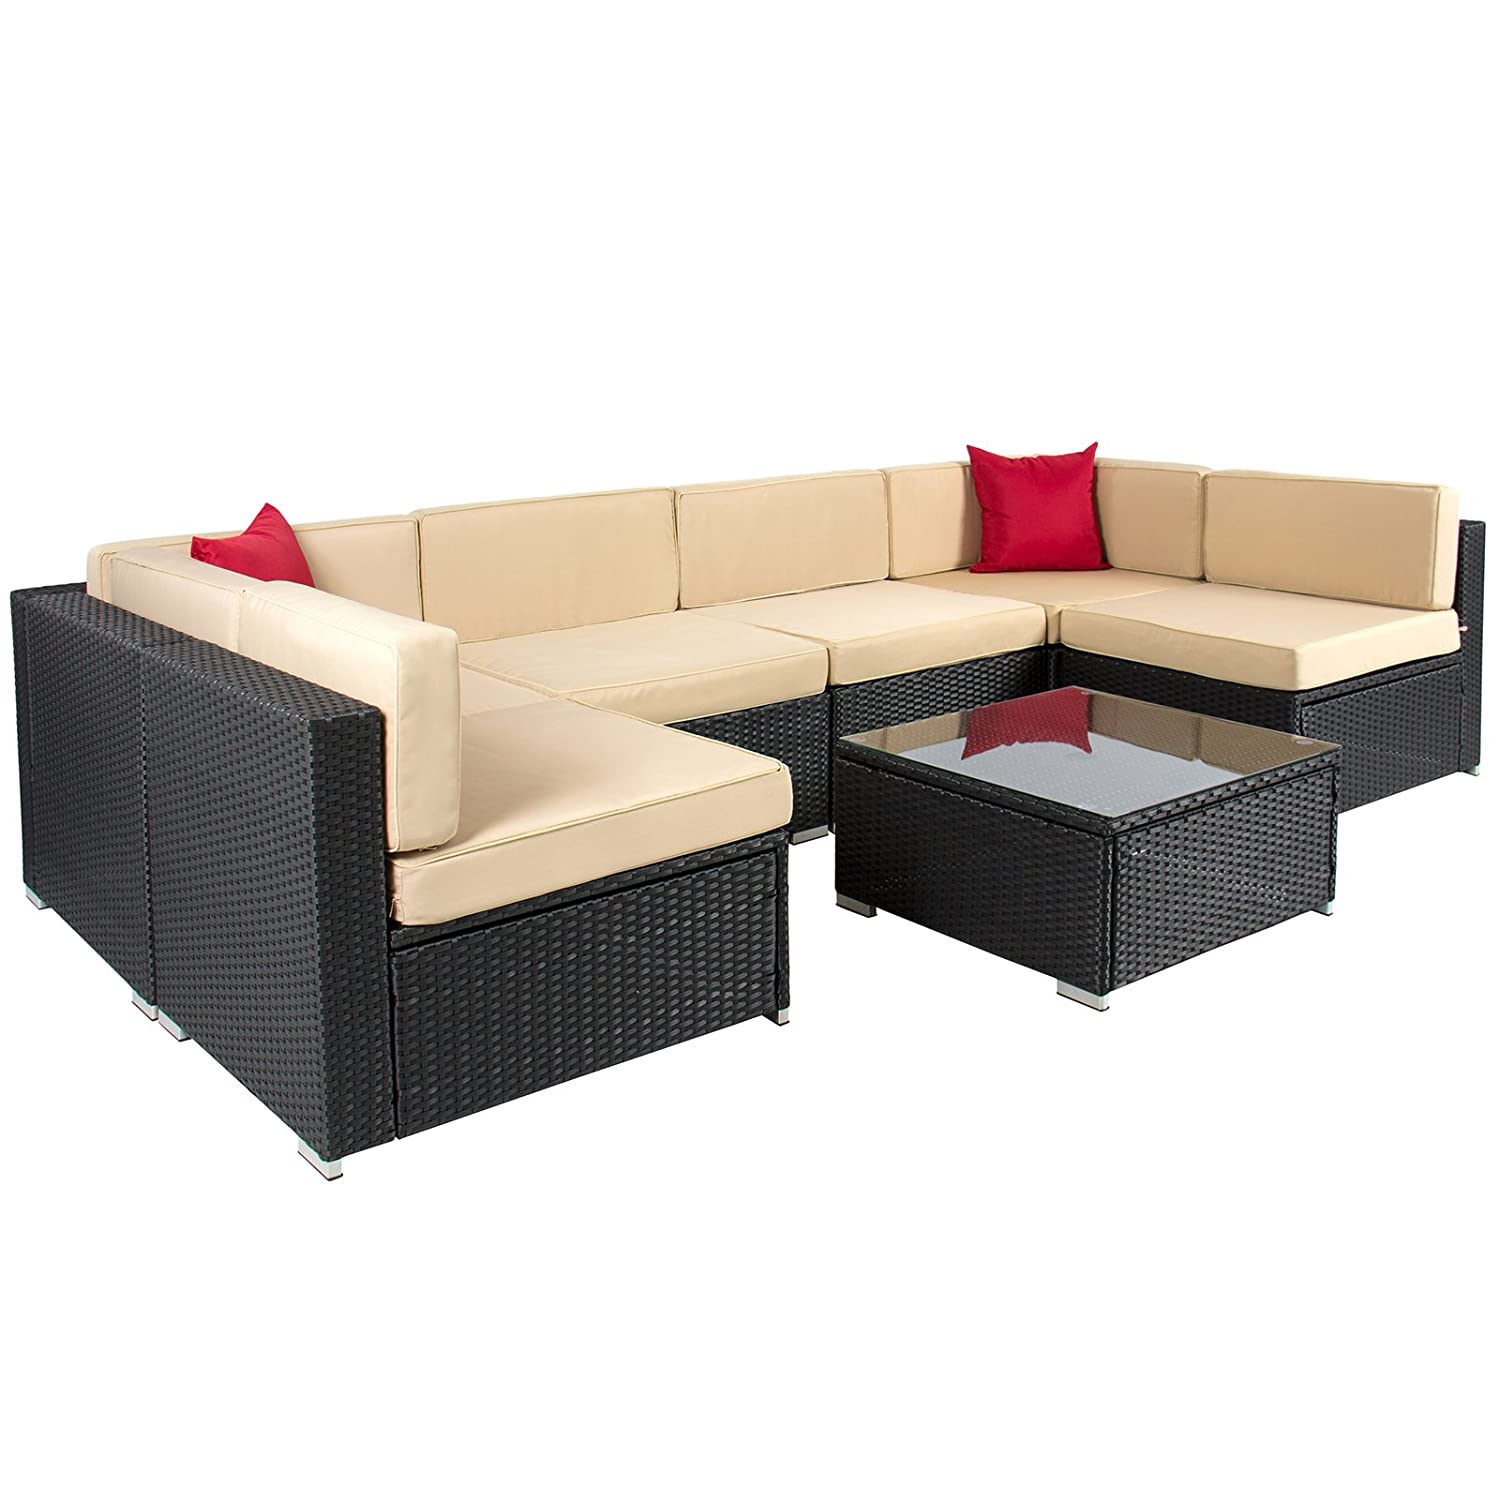 Amazon.com : Best ChoiceProducts 7 Piece Outdoor Patio Garden Furniture  Wicker Rattan Sofa Set Sectional, Black : Patio, Lawn U0026 Garden